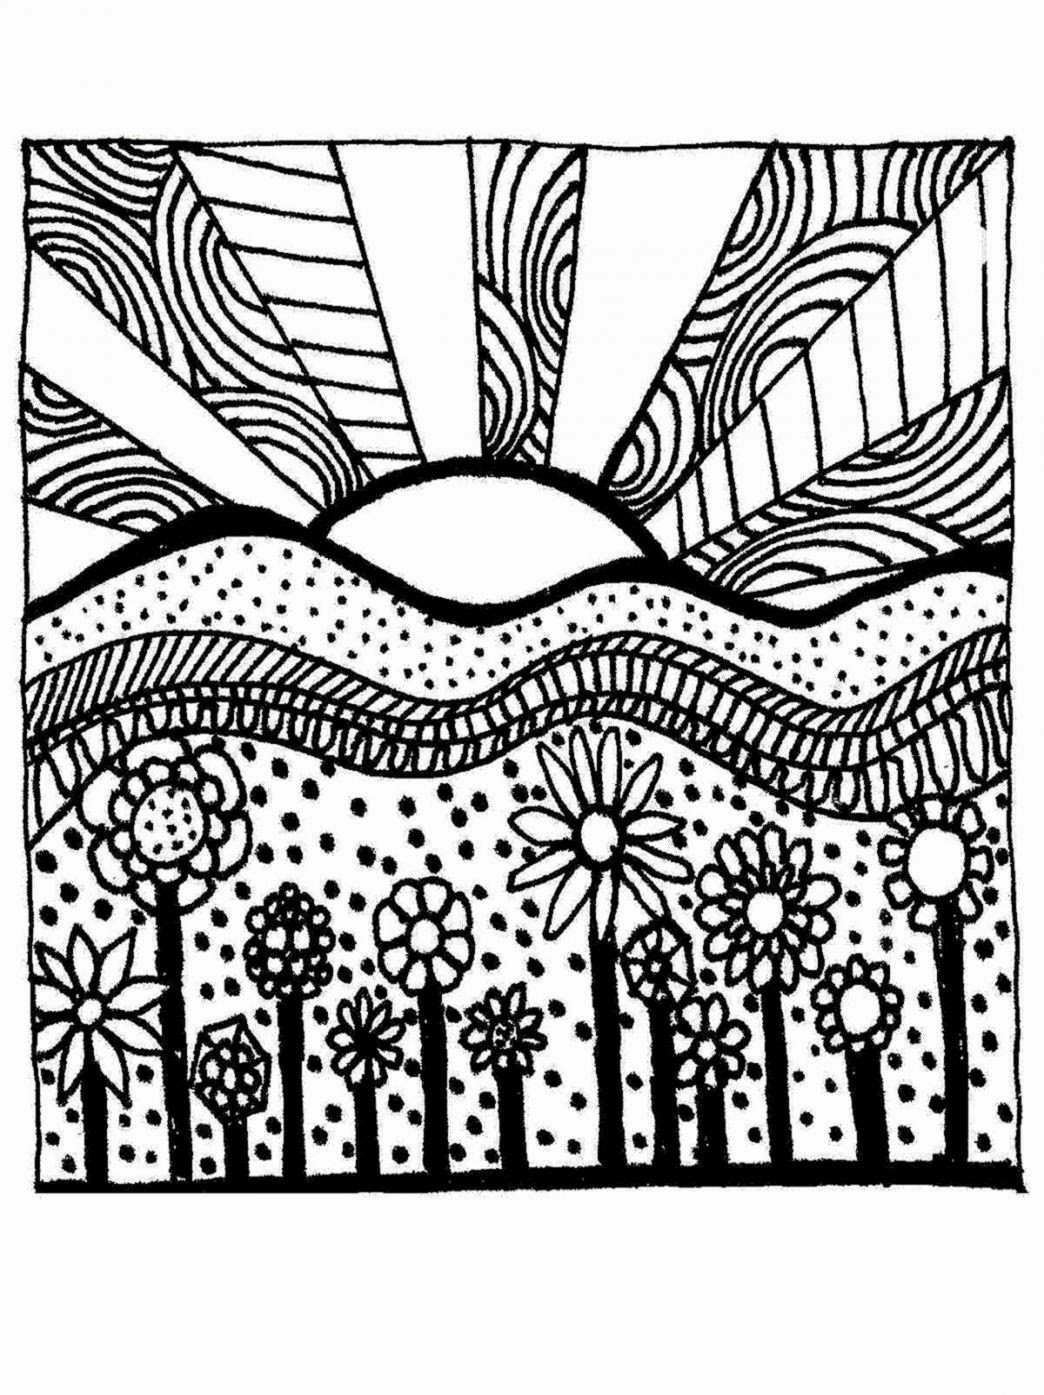 Printable Coloring Pages For Men  Free Coloring Pages For Adults To Print Special Image 22